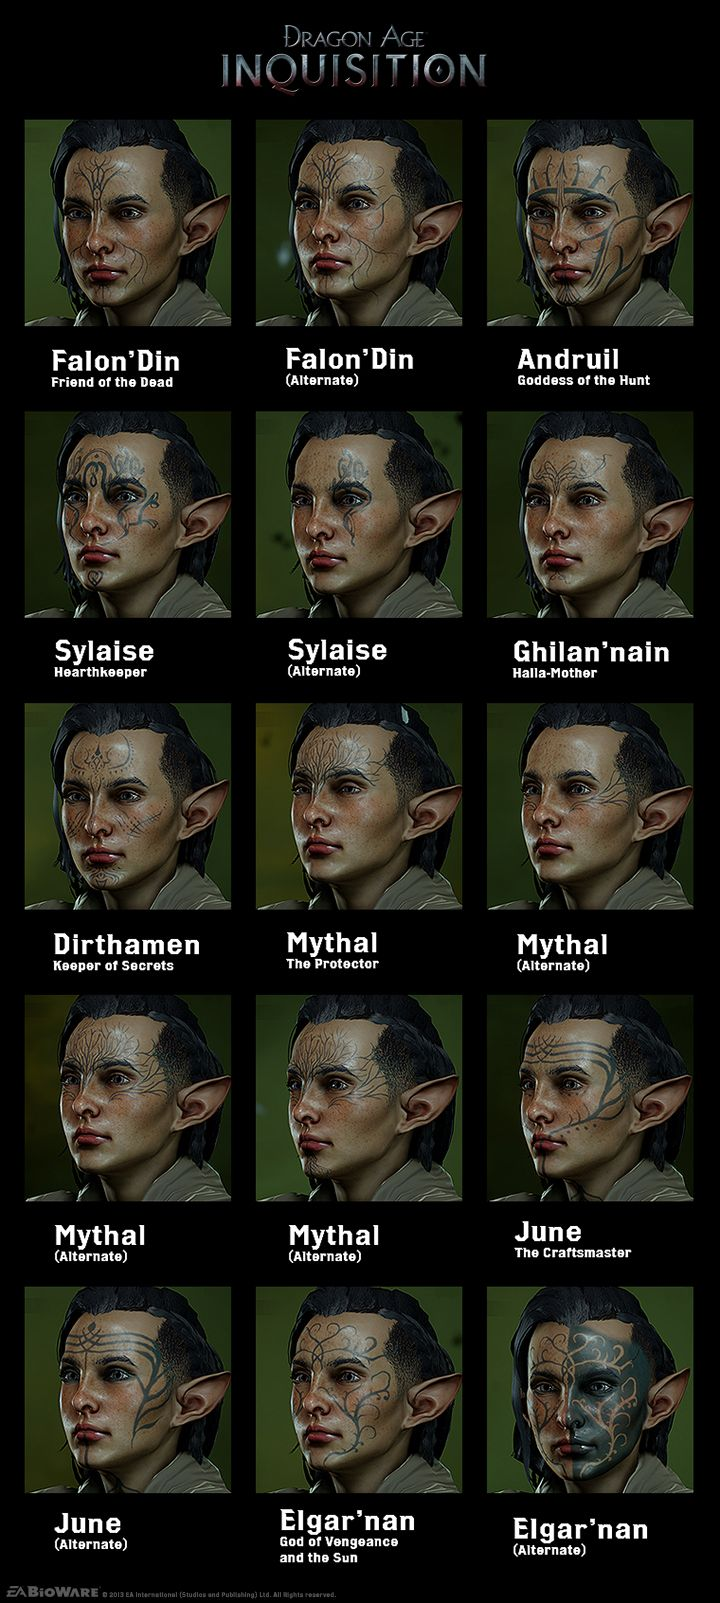 Dalish Tattoos Mike Laidlaw turned his override key, allowing me to put these up.